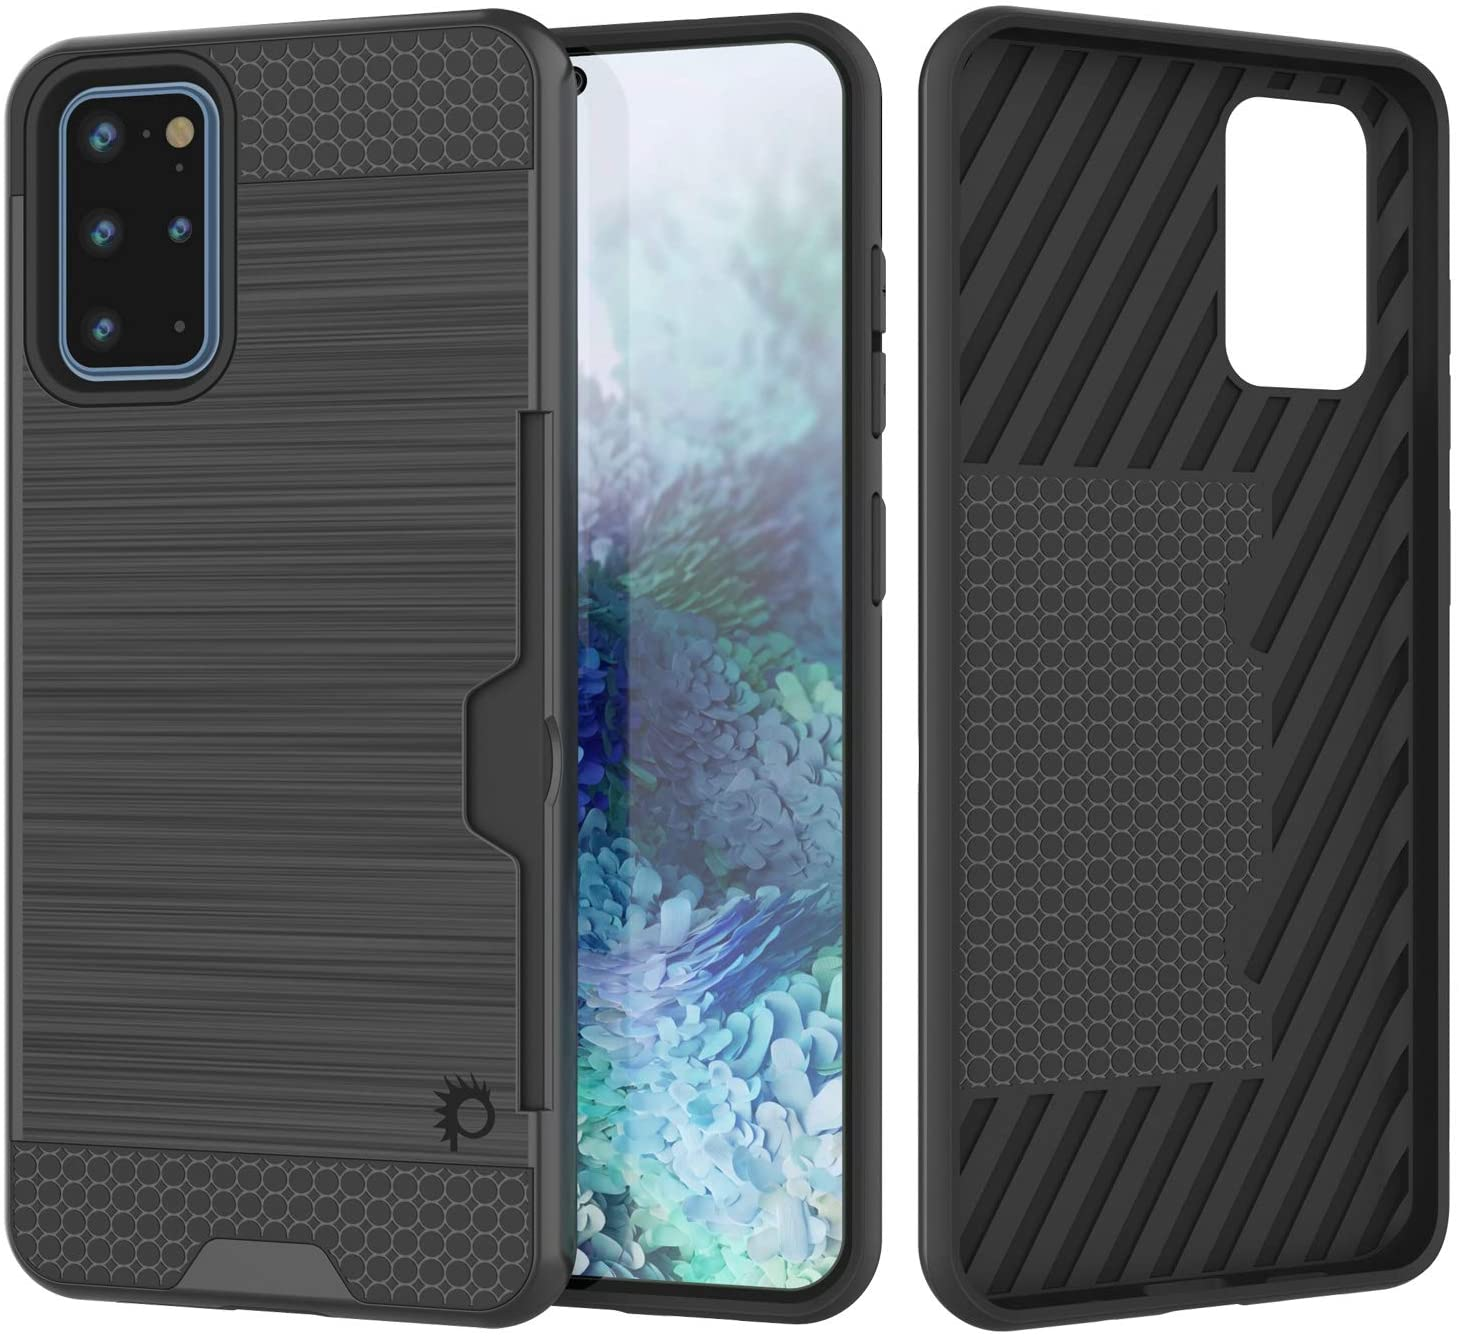 Galaxy S20+ Plus  Case, PUNKcase [SLOT Series] [Slim Fit] Dual-Layer Armor Cover w/Integrated Anti-Shock System, Credit Card Slot [Grey]